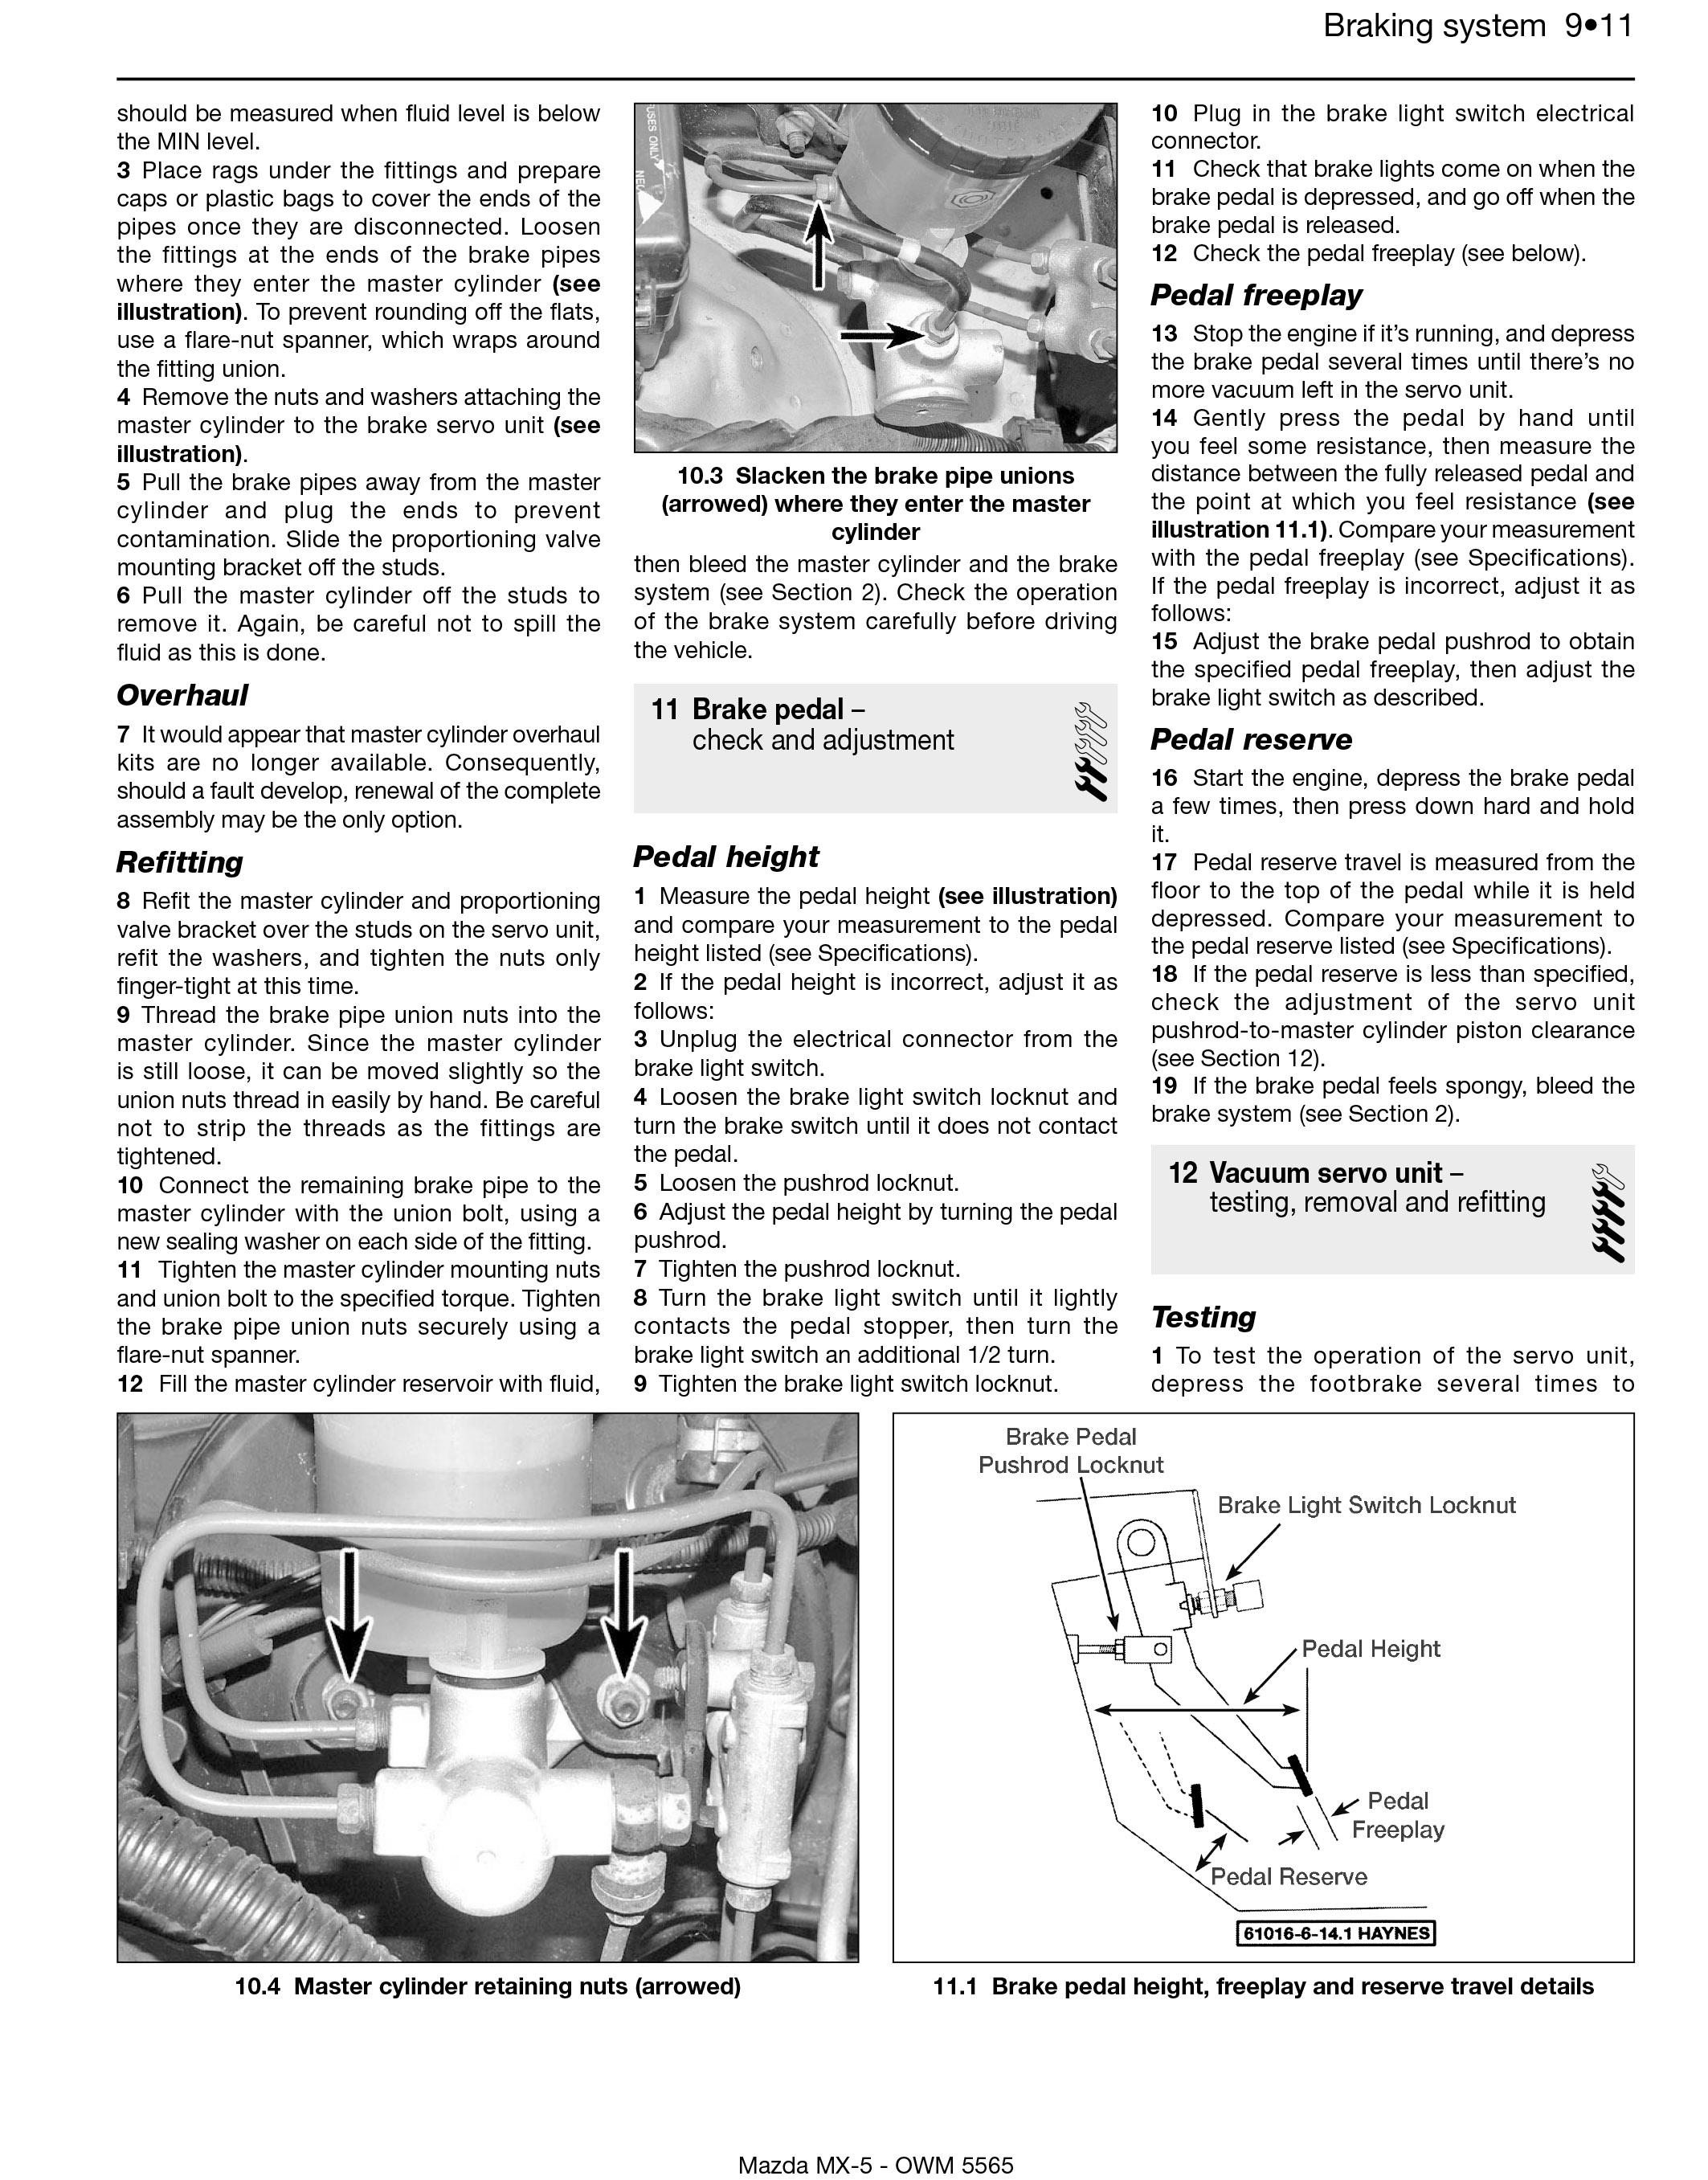 Mx 5 Haynes Publishing 88 Acura Tail Light Wiring Diagram Free Picture Scroll Right